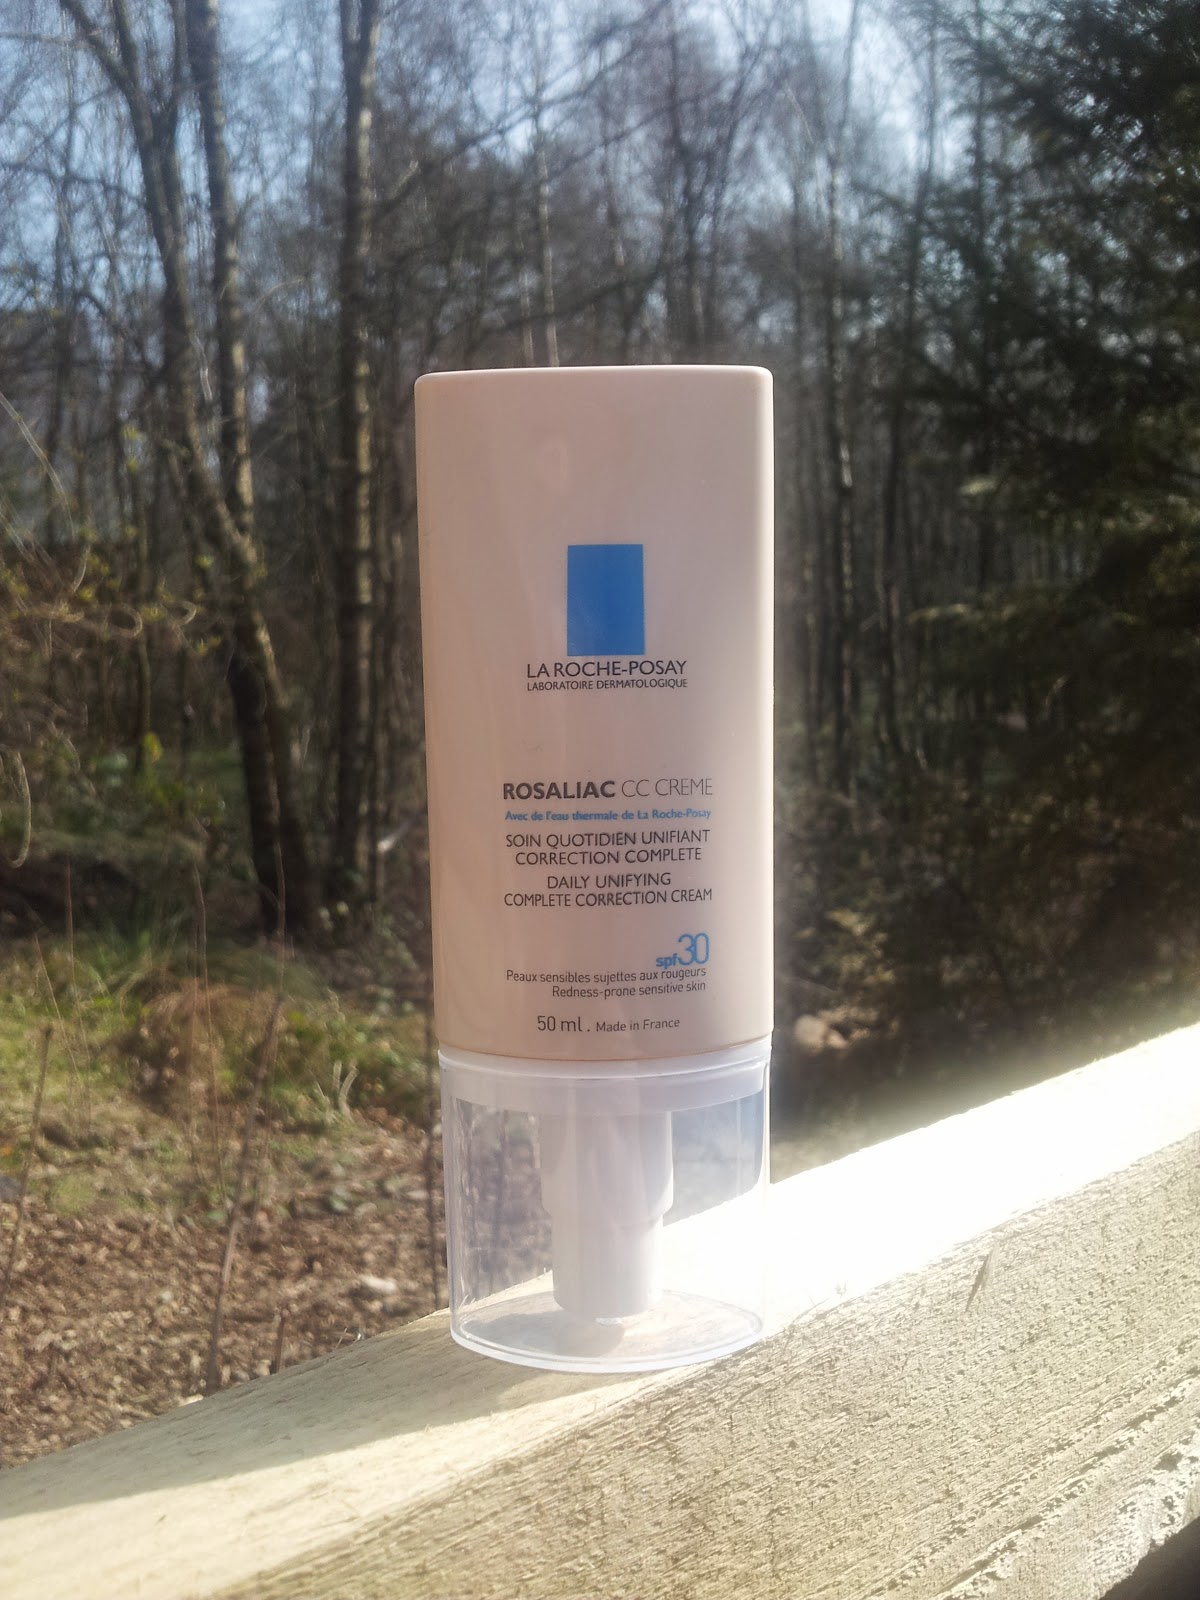 La roche posay rosaliac CC cream review